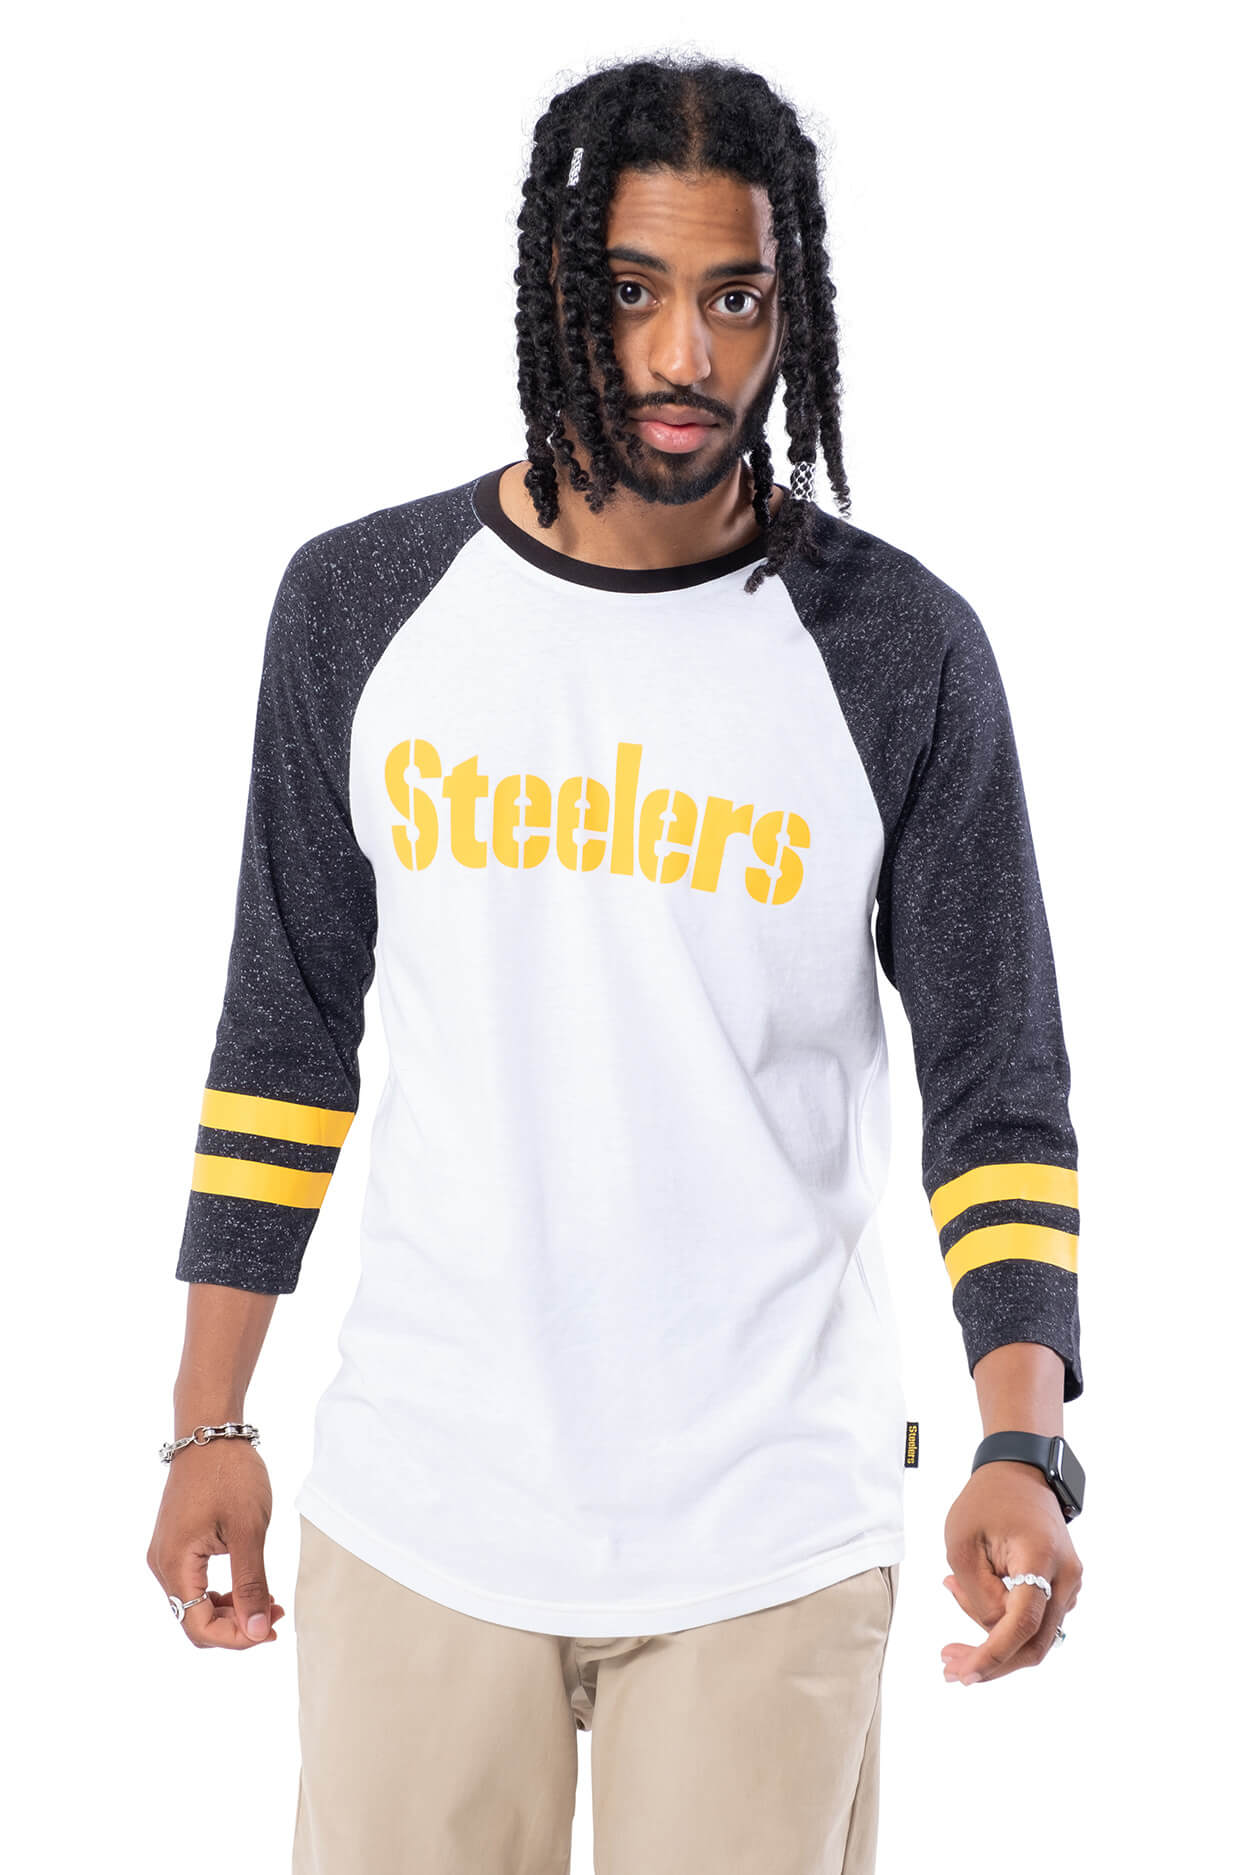 NFL Pittsburgh Steelers Men's Baseball Tee|Pittsburgh Steelers